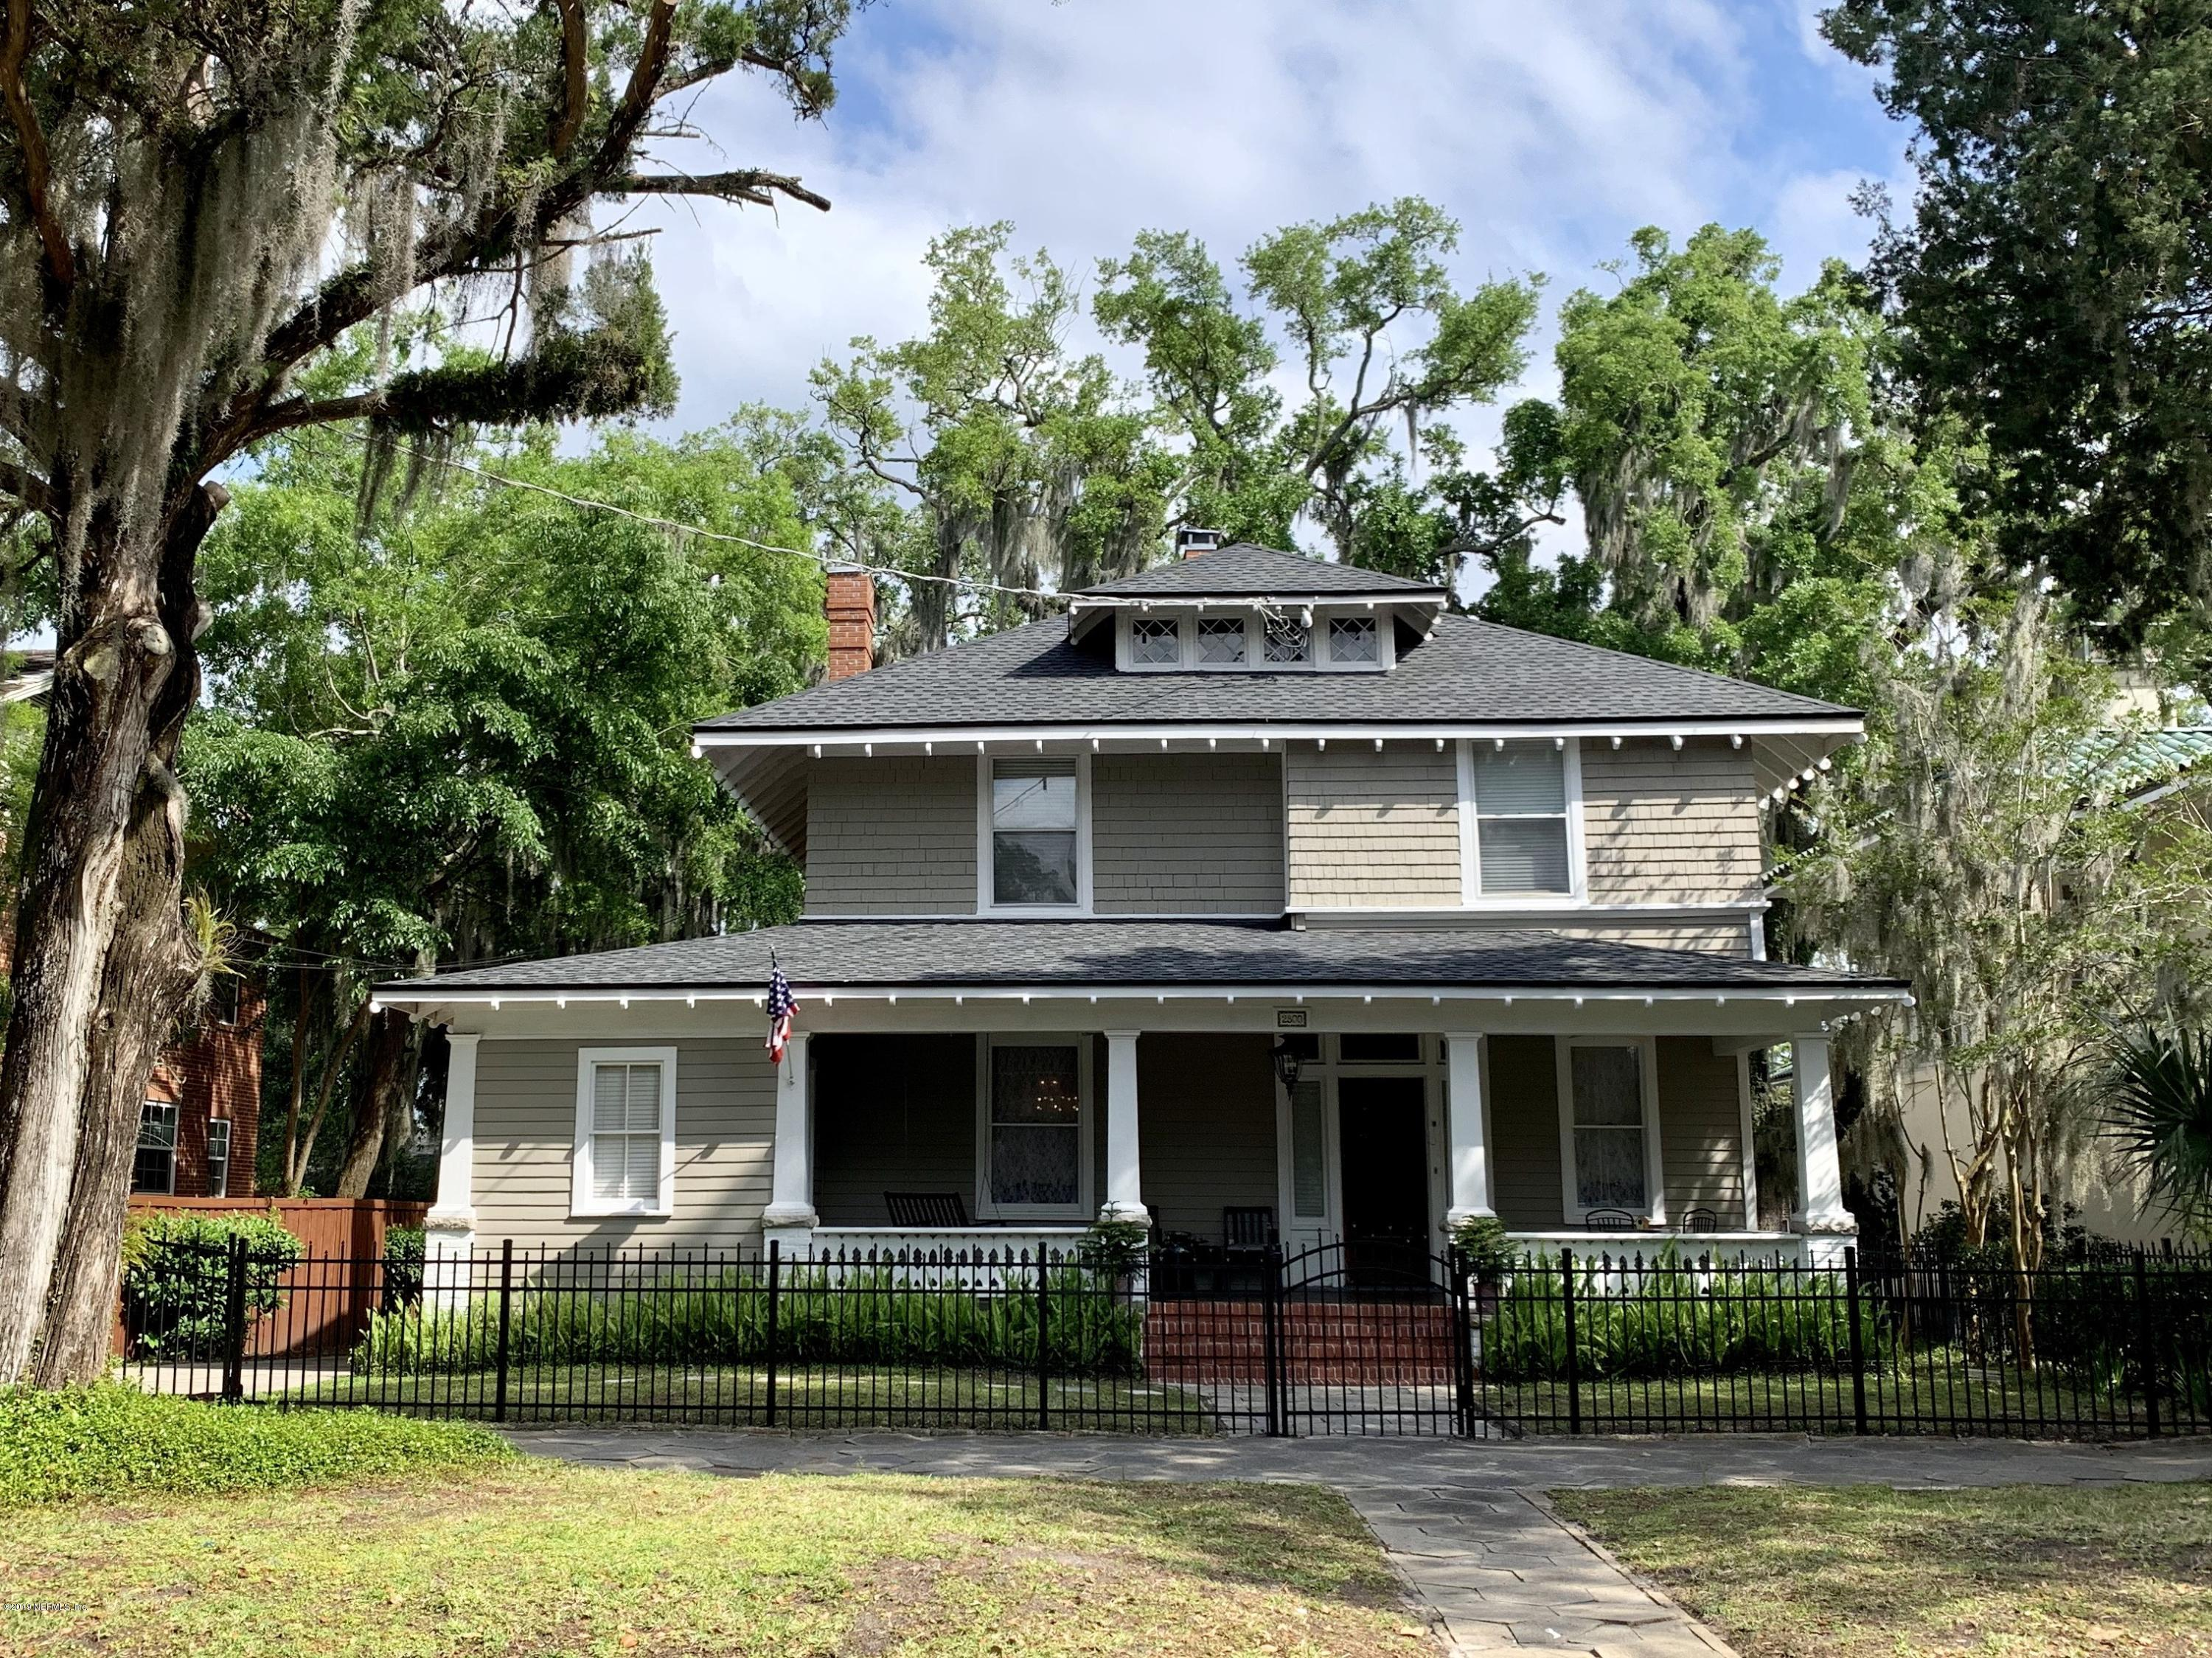 2800 RIVERSIDE, JACKSONVILLE, FLORIDA 32205, 5 Bedrooms Bedrooms, ,3 BathroomsBathrooms,Residential - single family,For sale,RIVERSIDE,989532